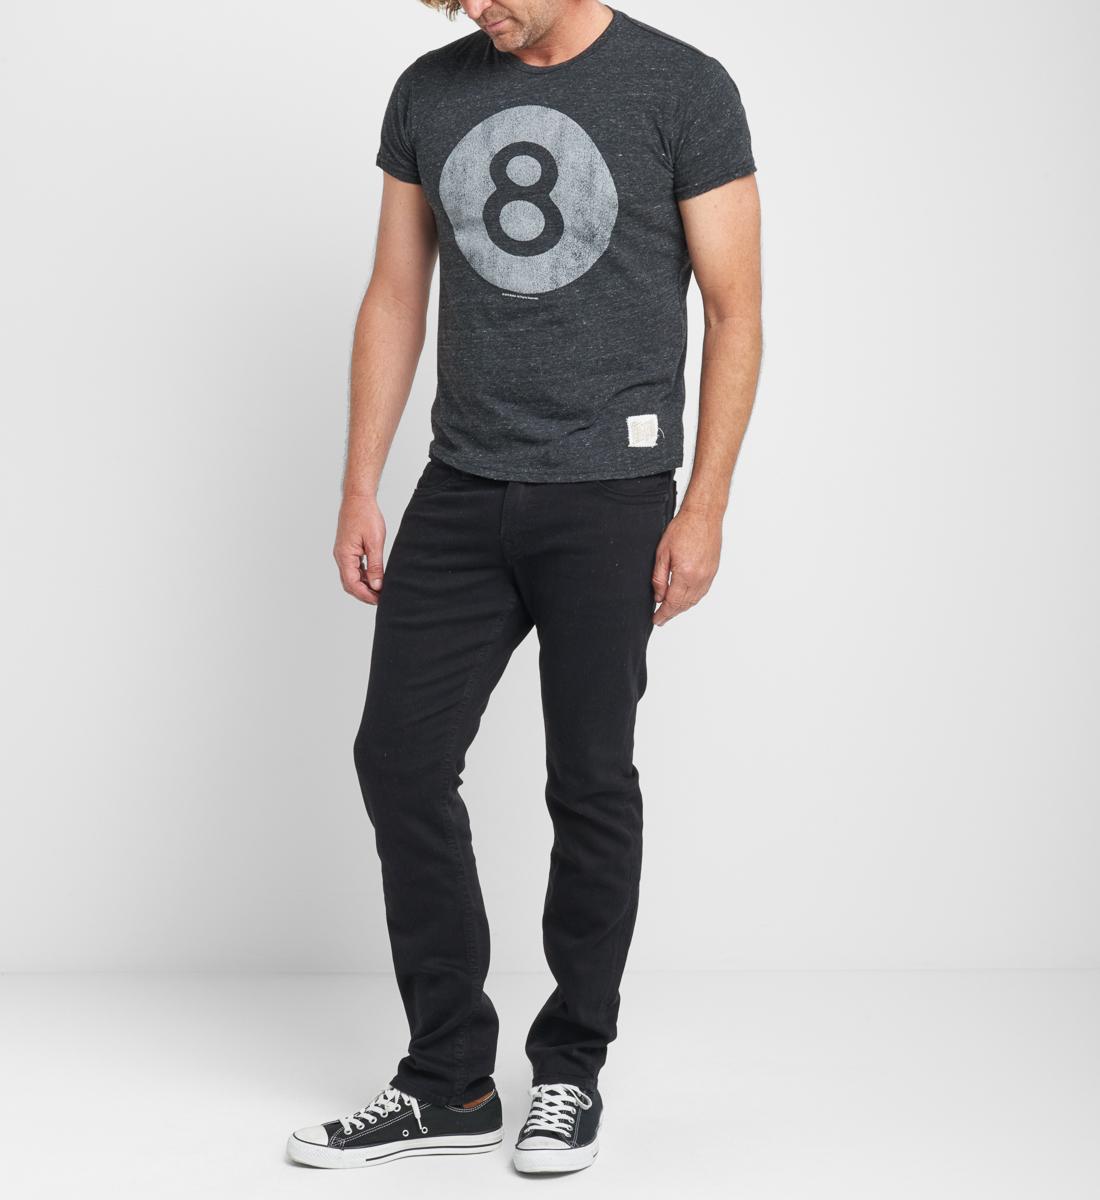 8 Ball Graphic Tee, , hi-res